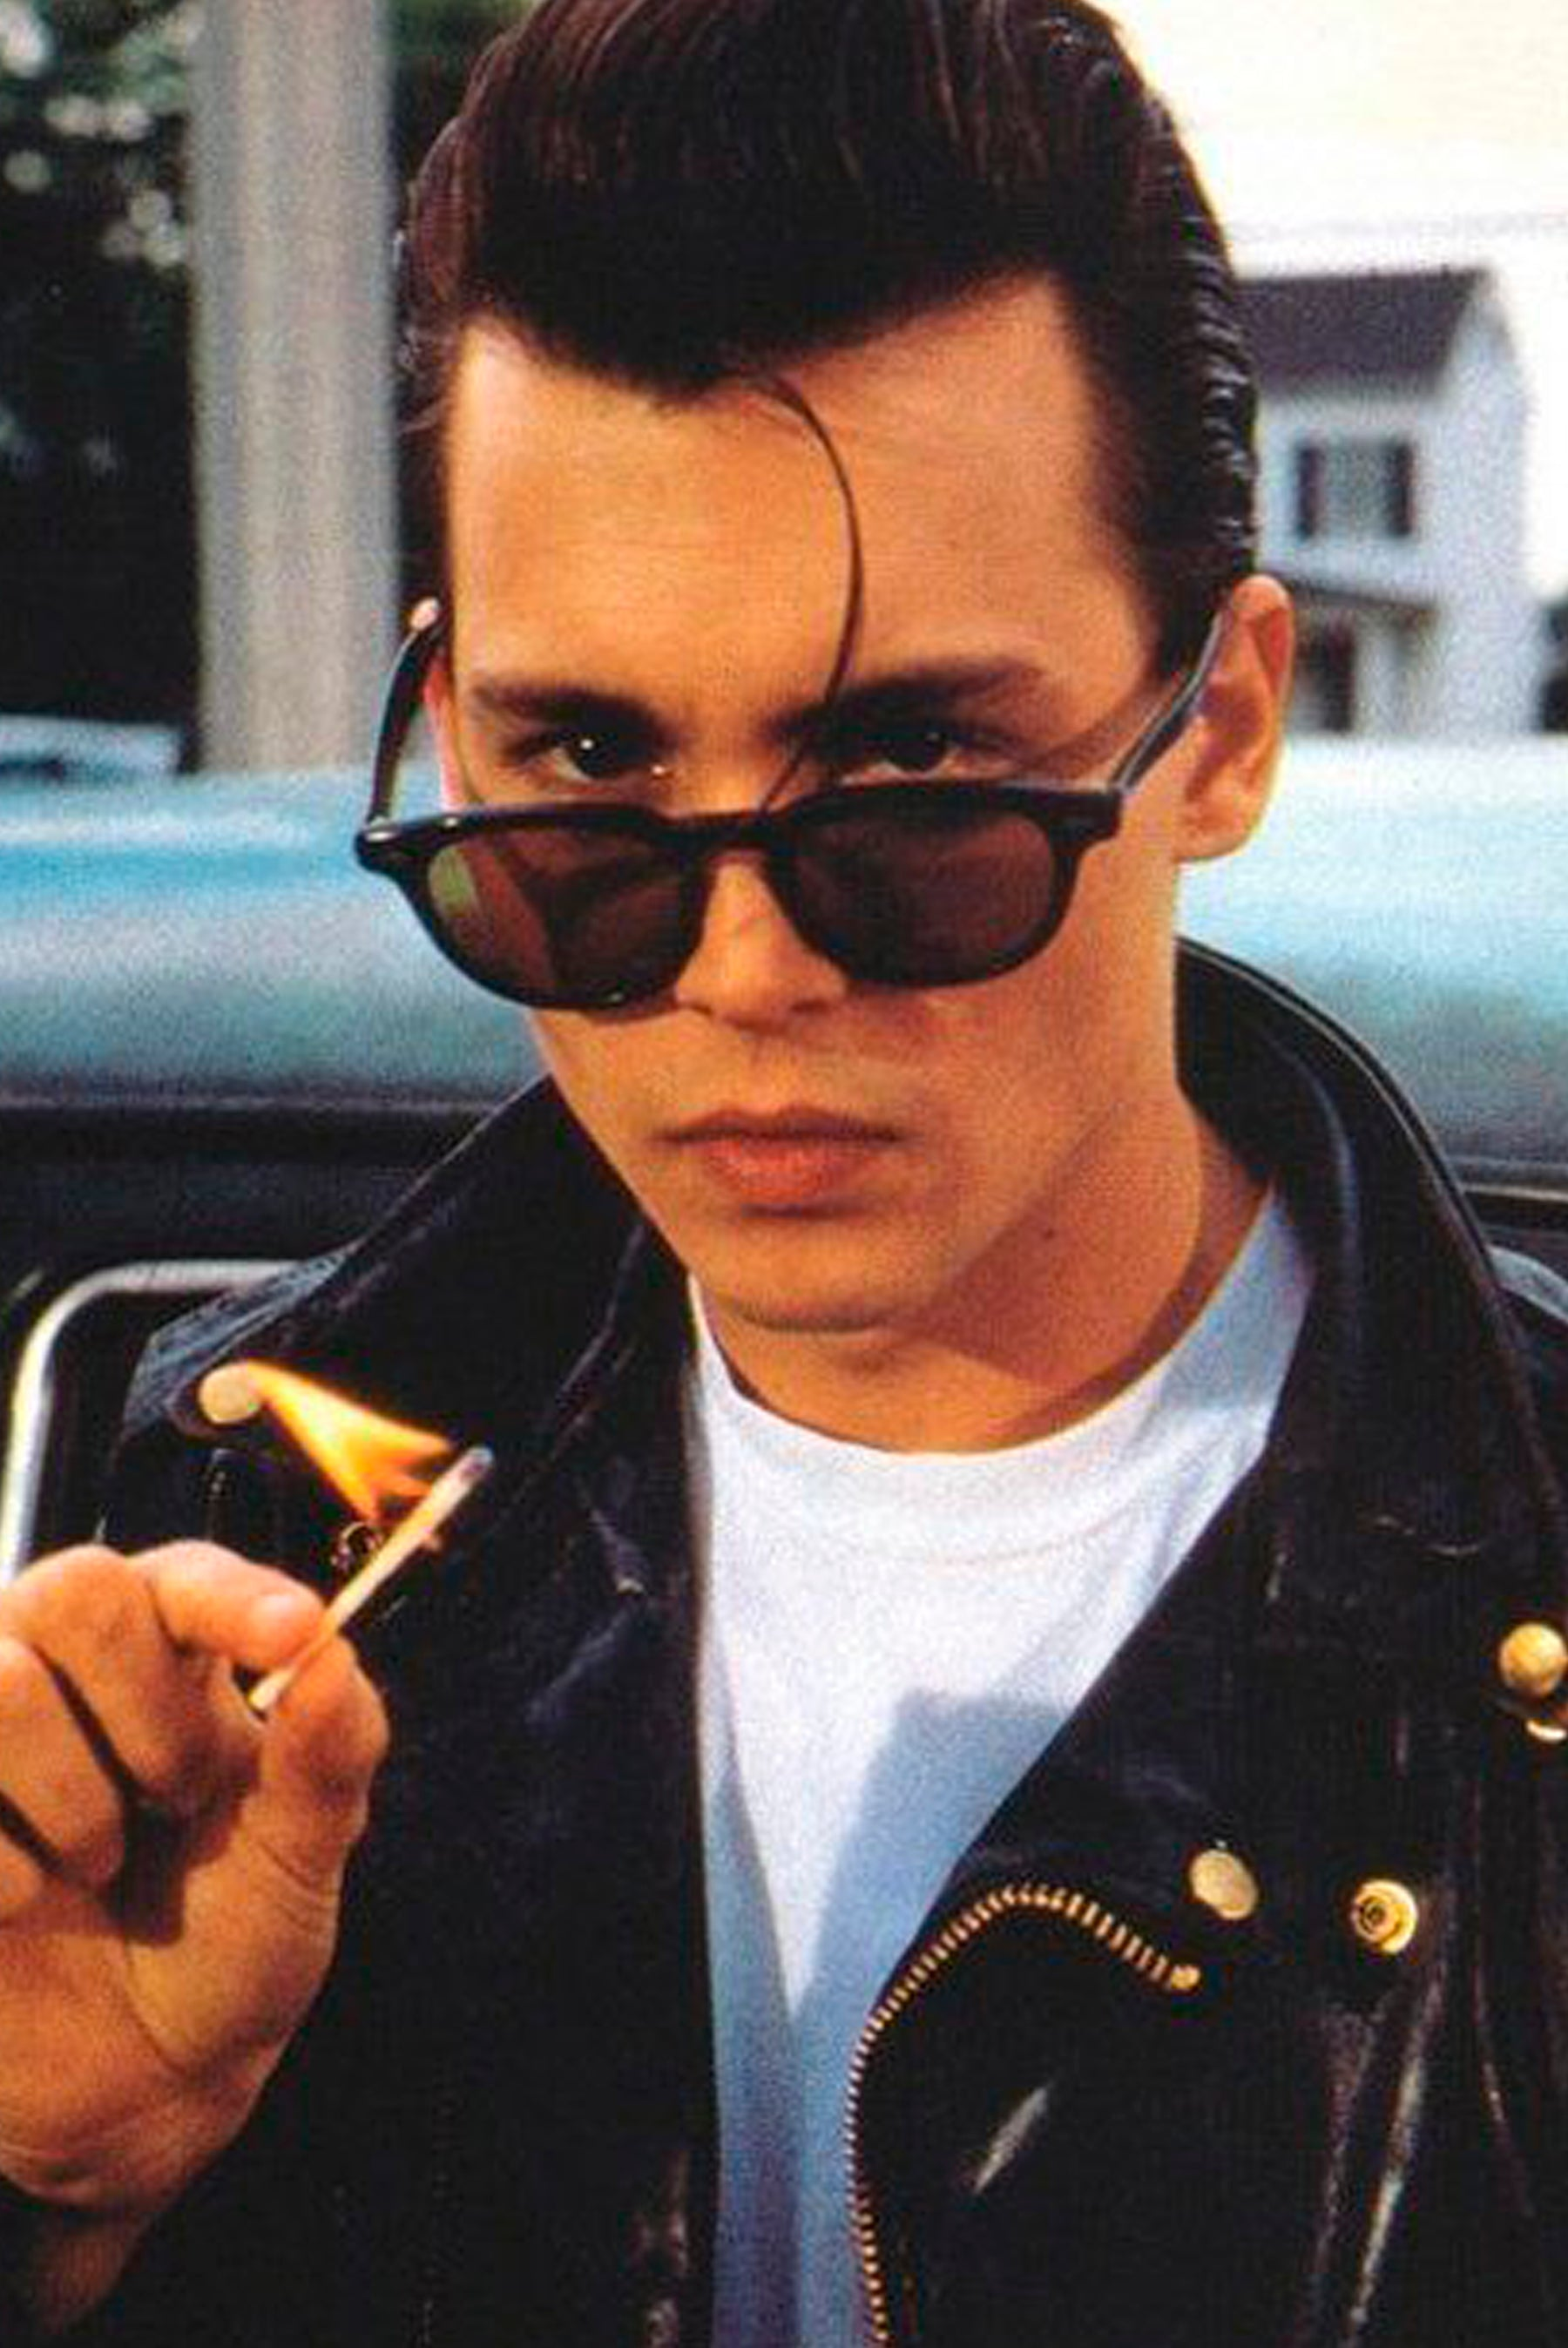 photo of Johnny Depp wearing sunglasses